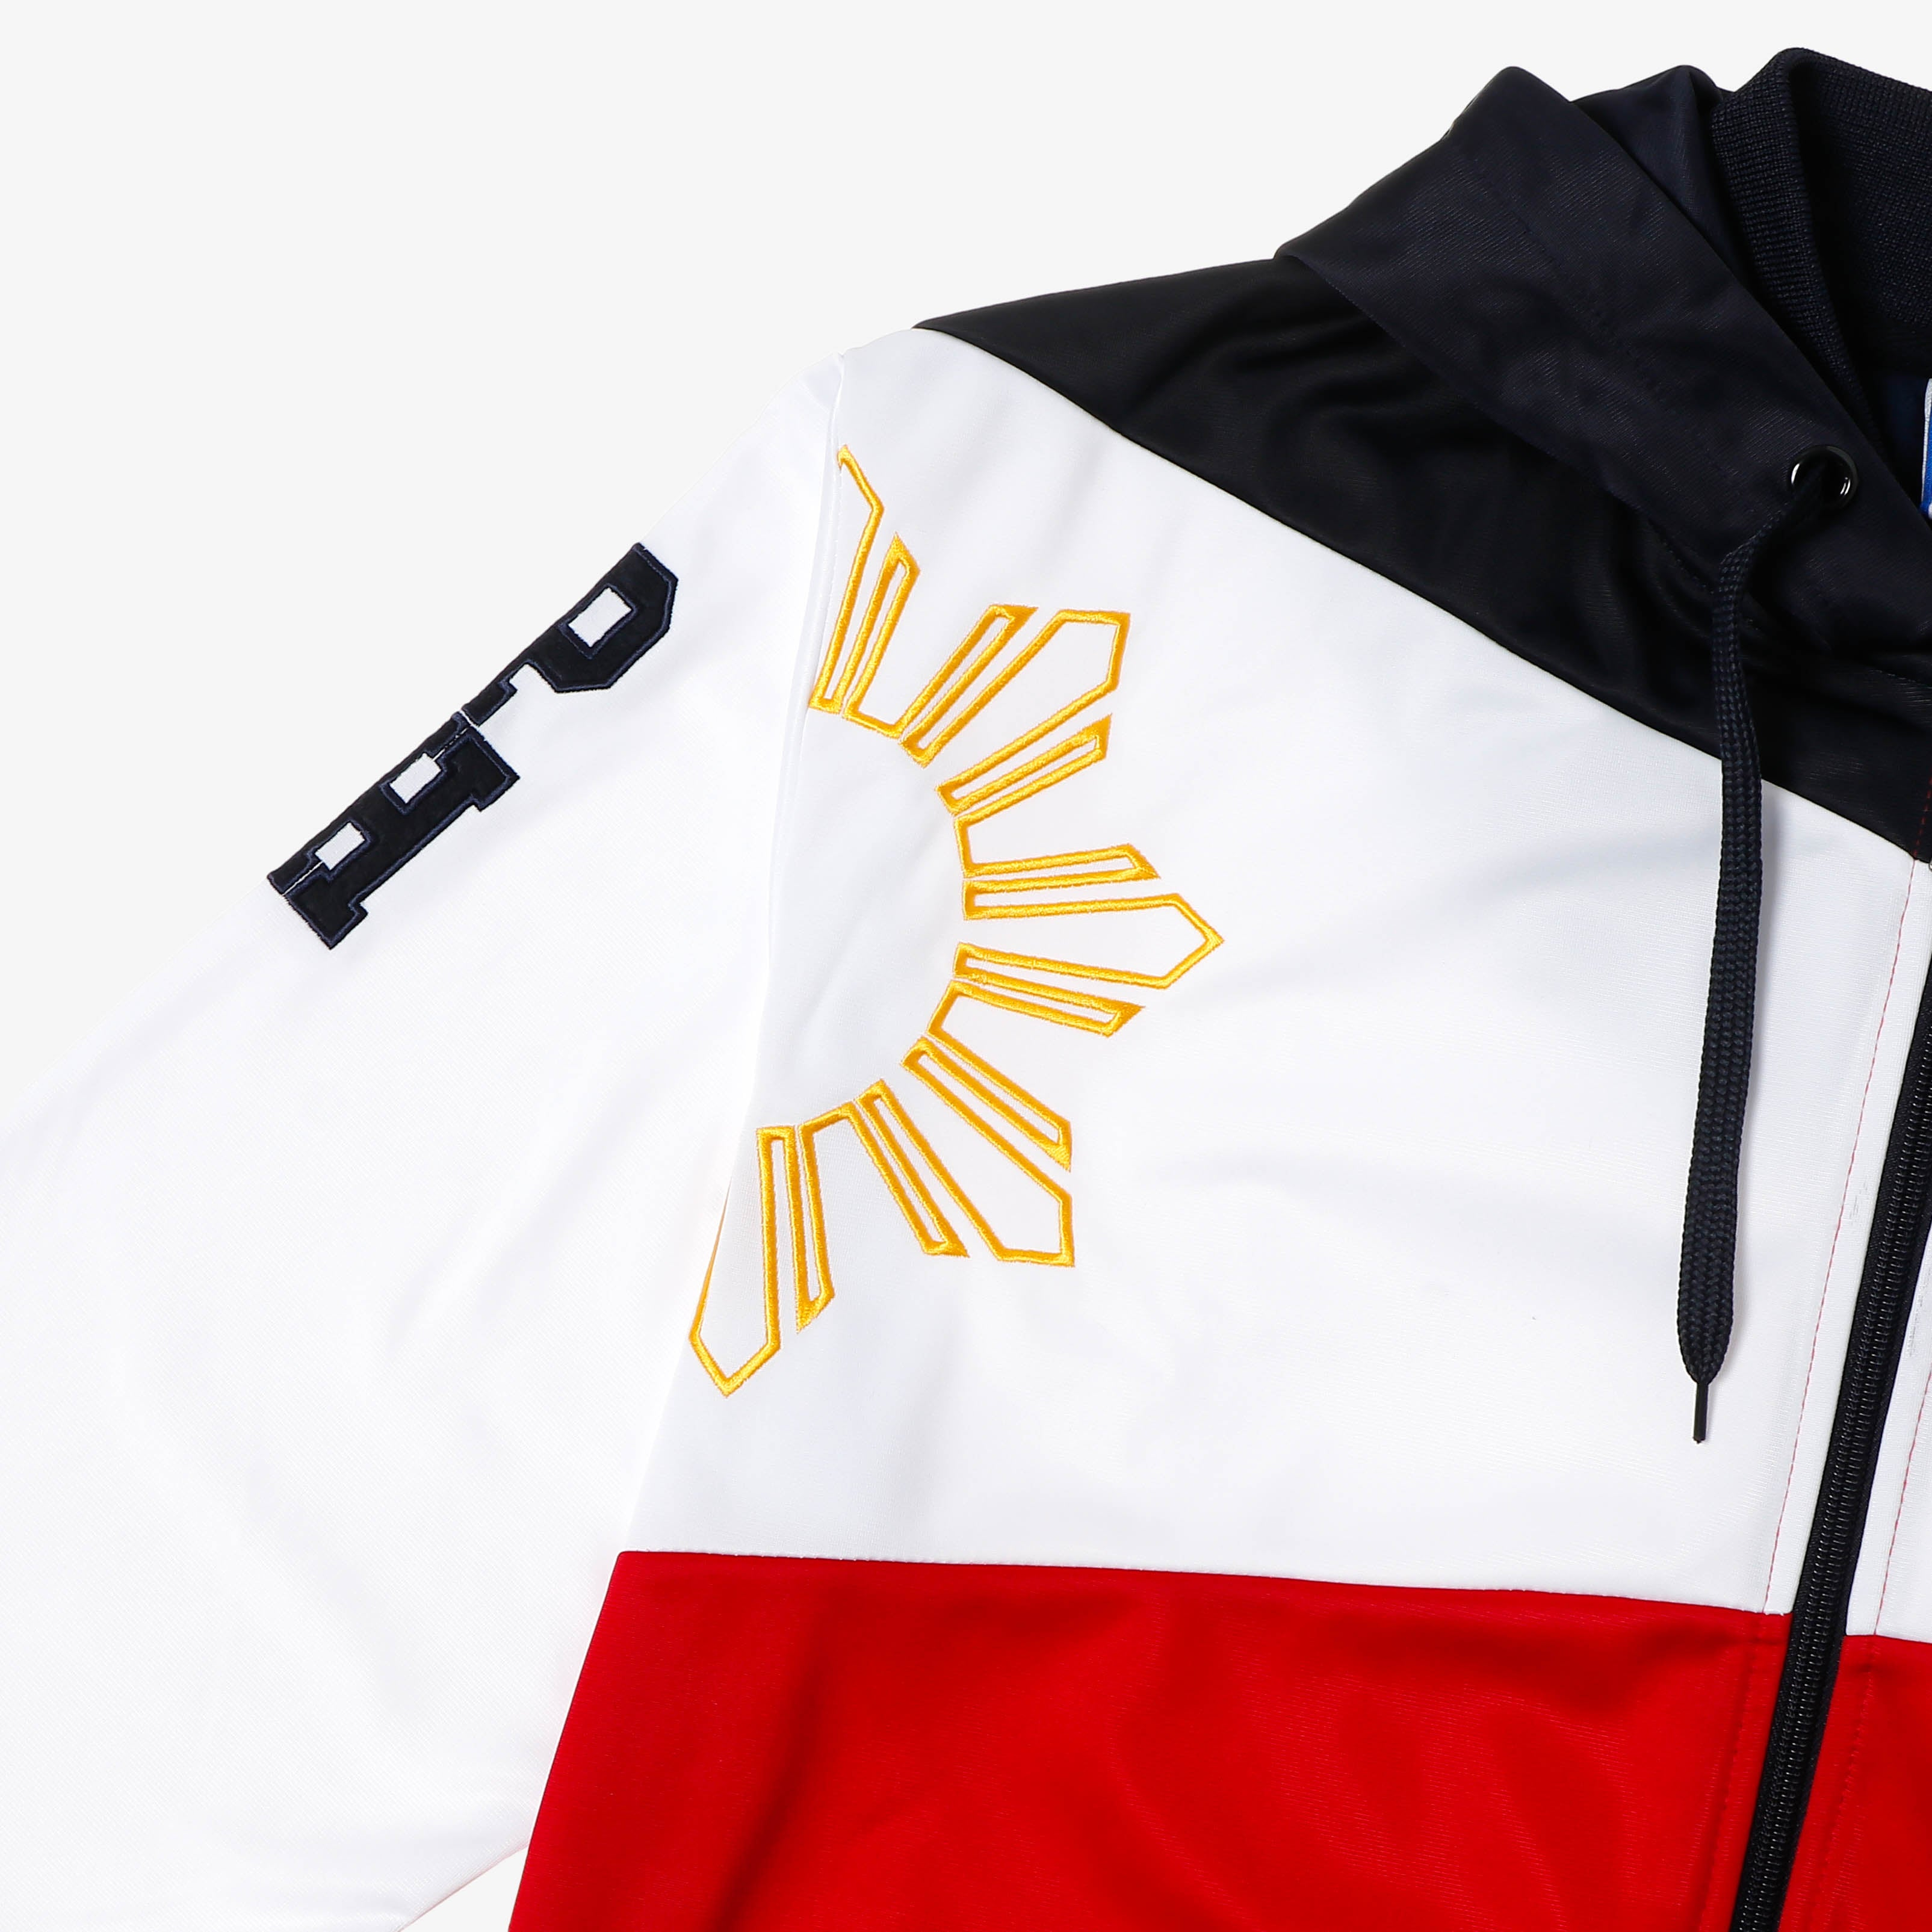 My Philippines Men's Flag Inspired Jacket